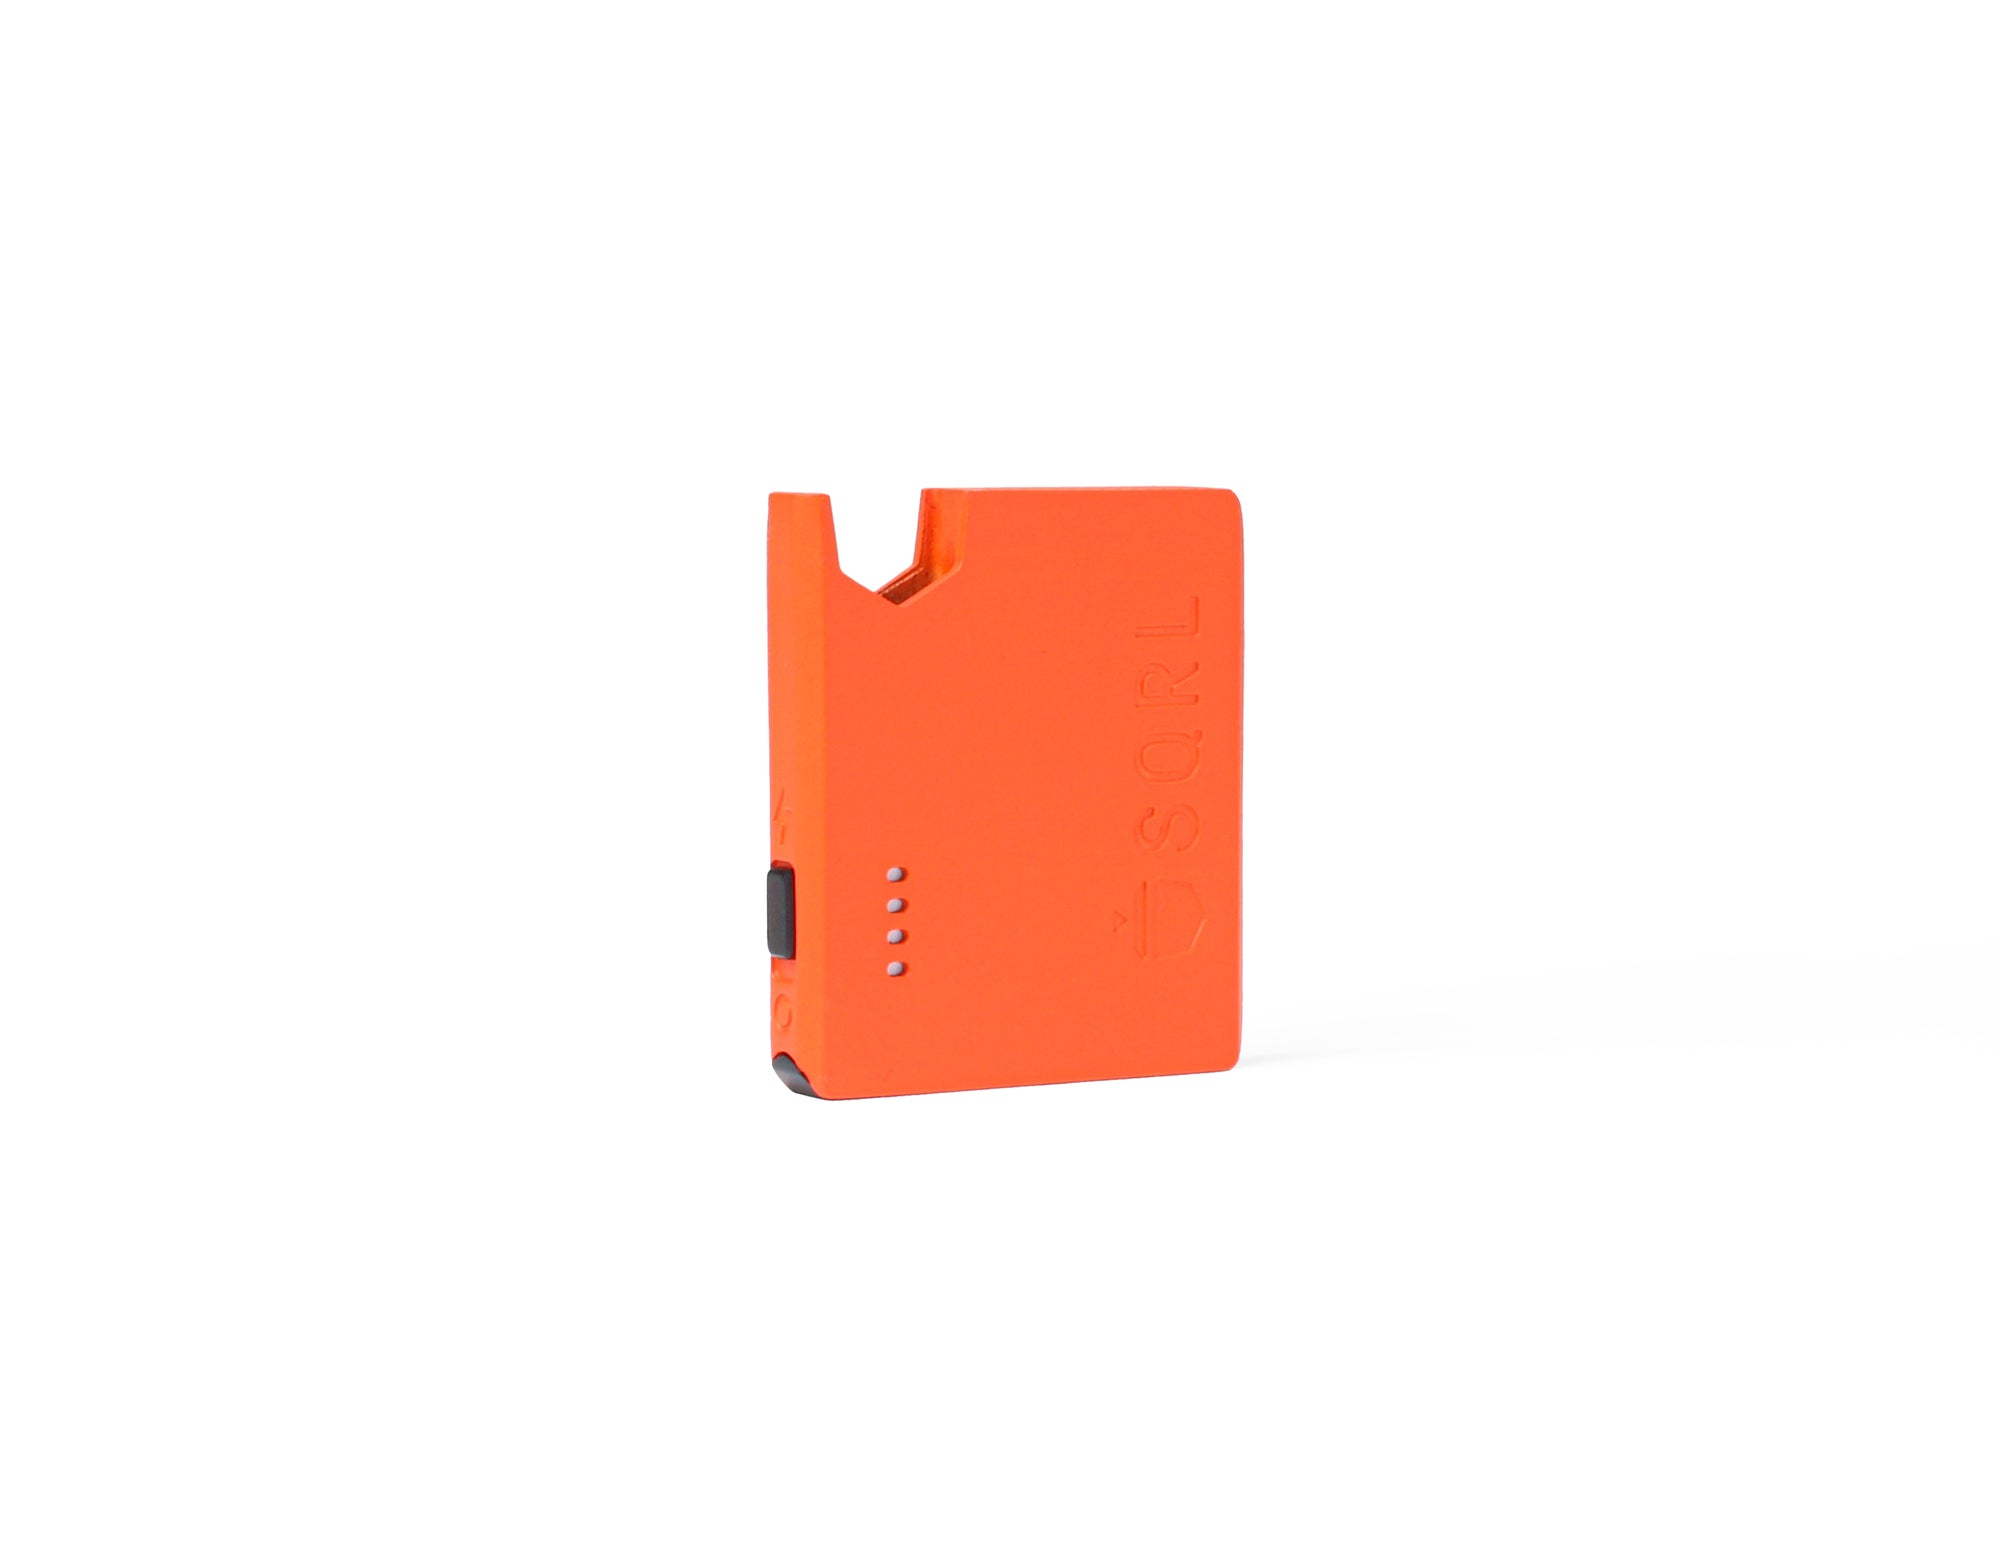 SQRL NCT Compatible Pod Device - Orange